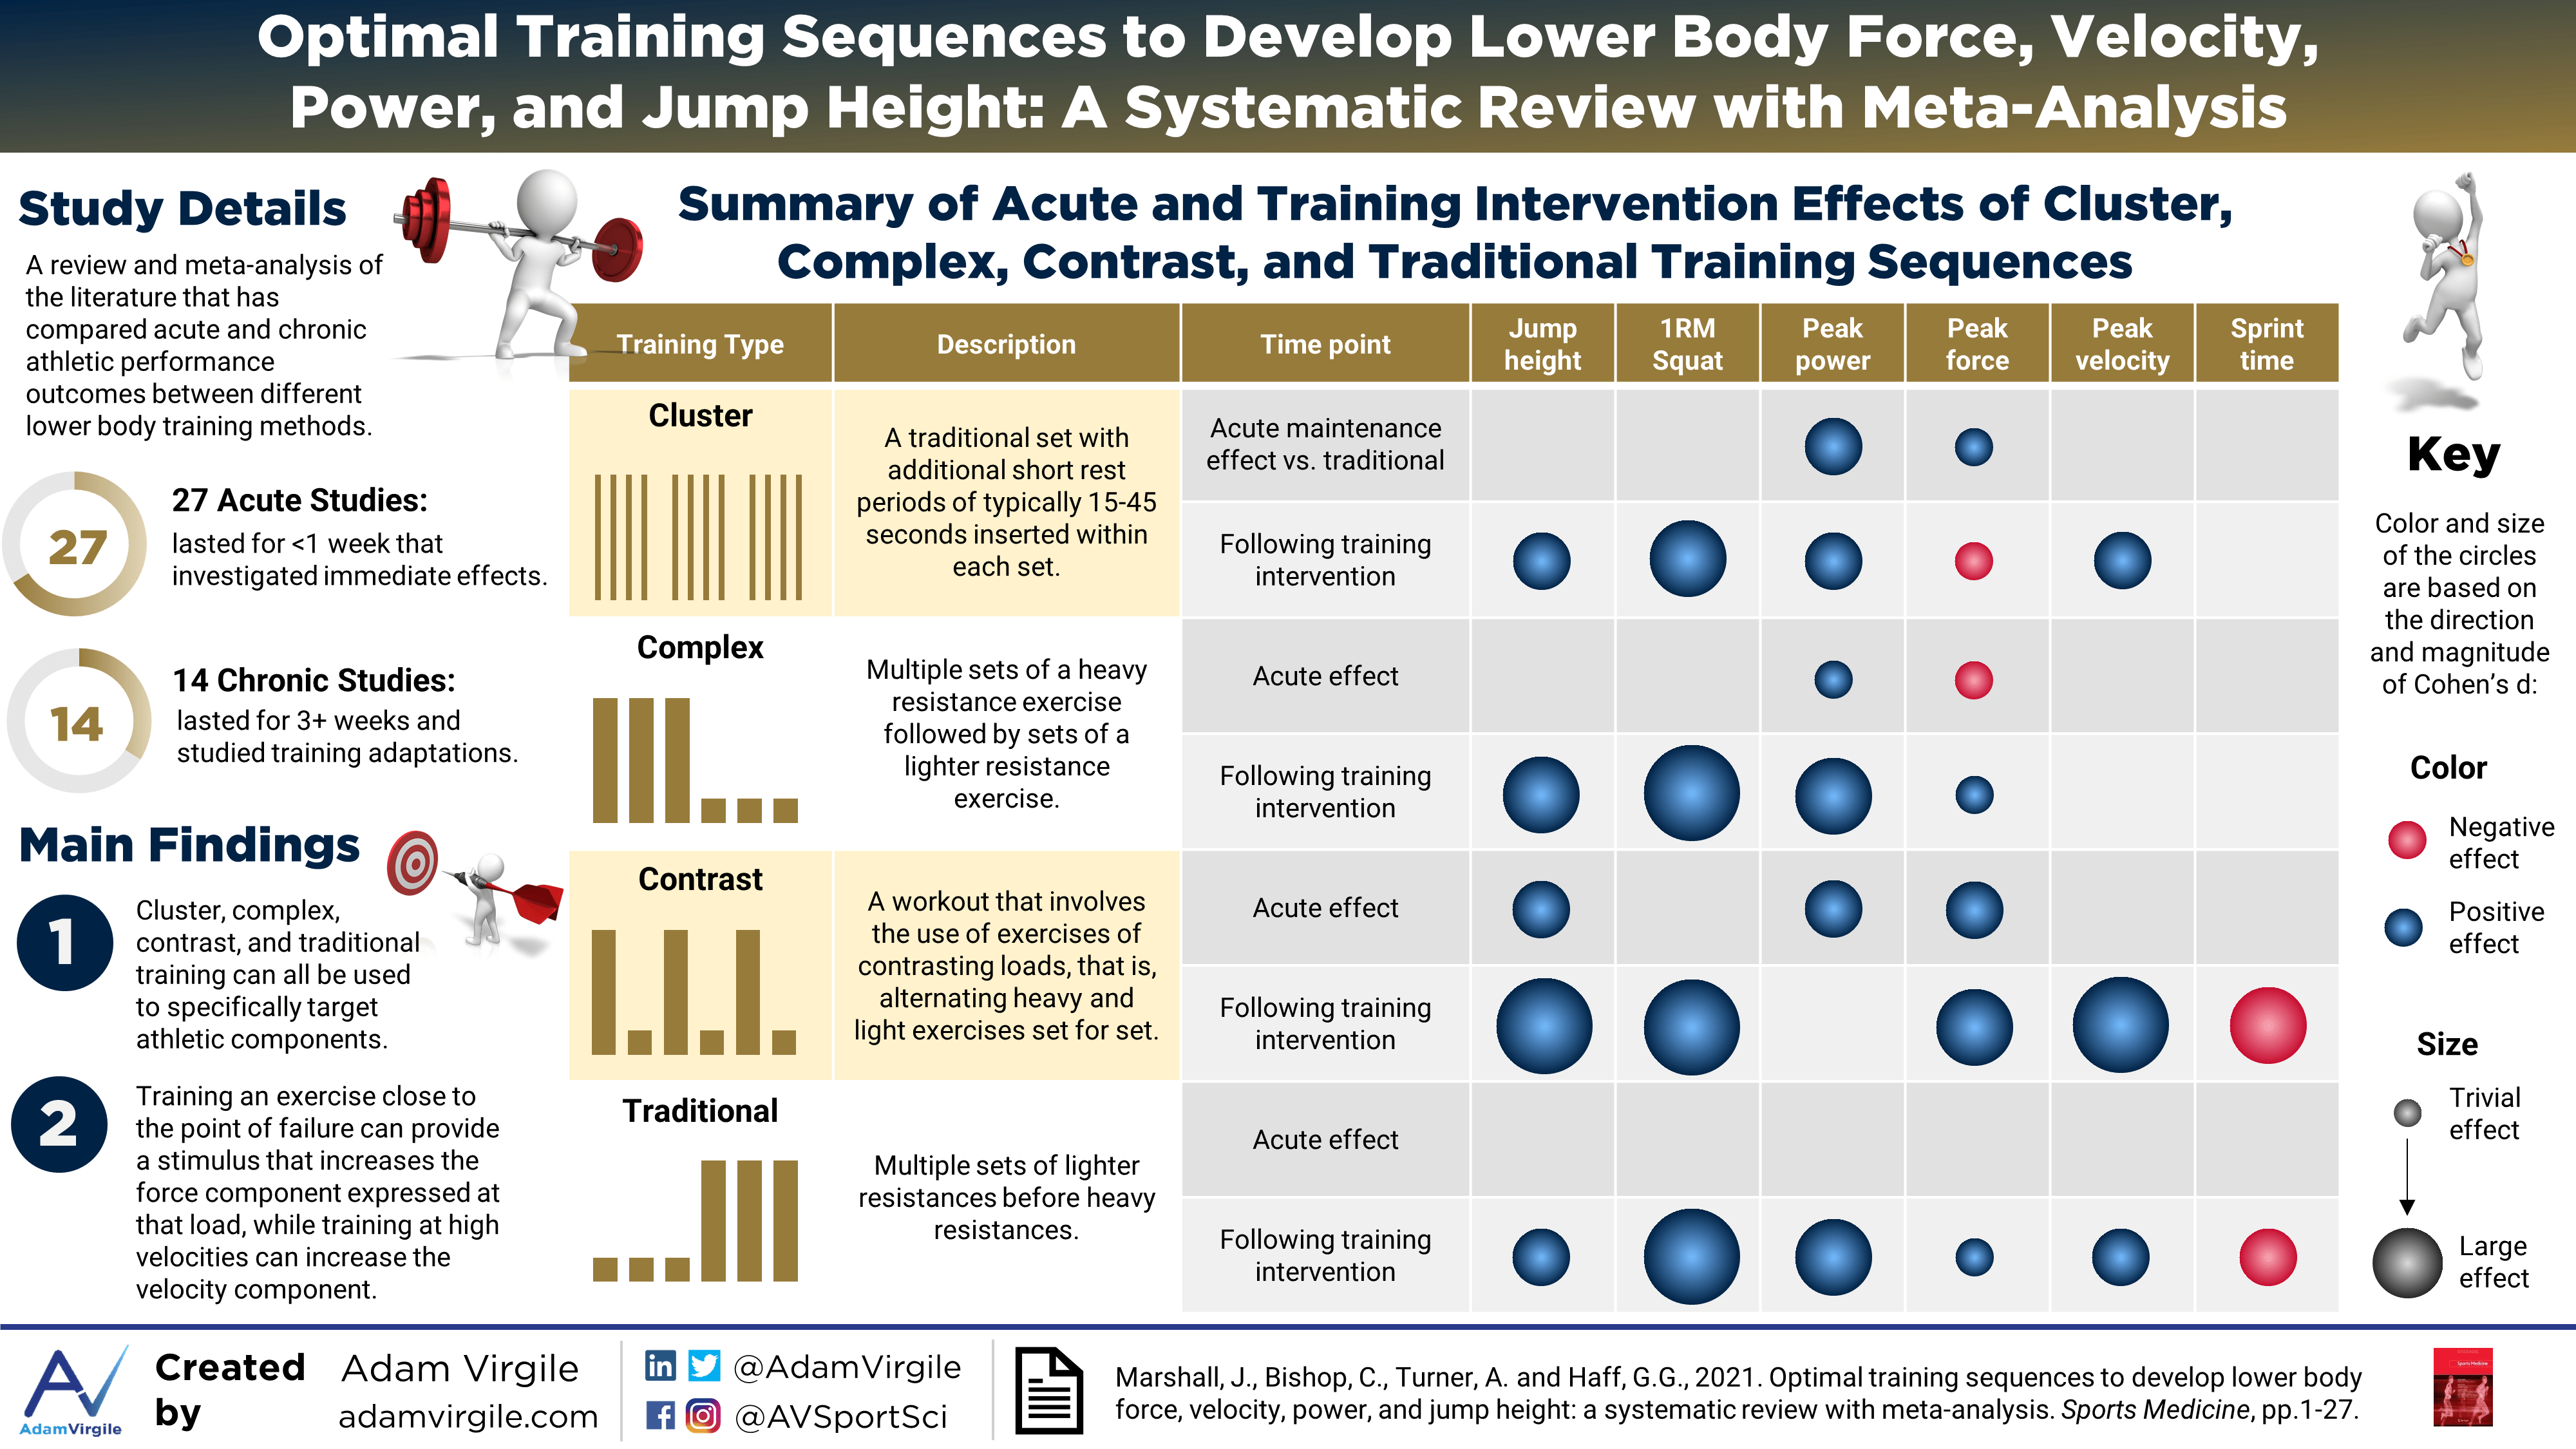 Optimal Training Sequences to Develop Lower Body Force, Velocity, Power, and Jump Height: A Systematic Review with Meta-Analysis